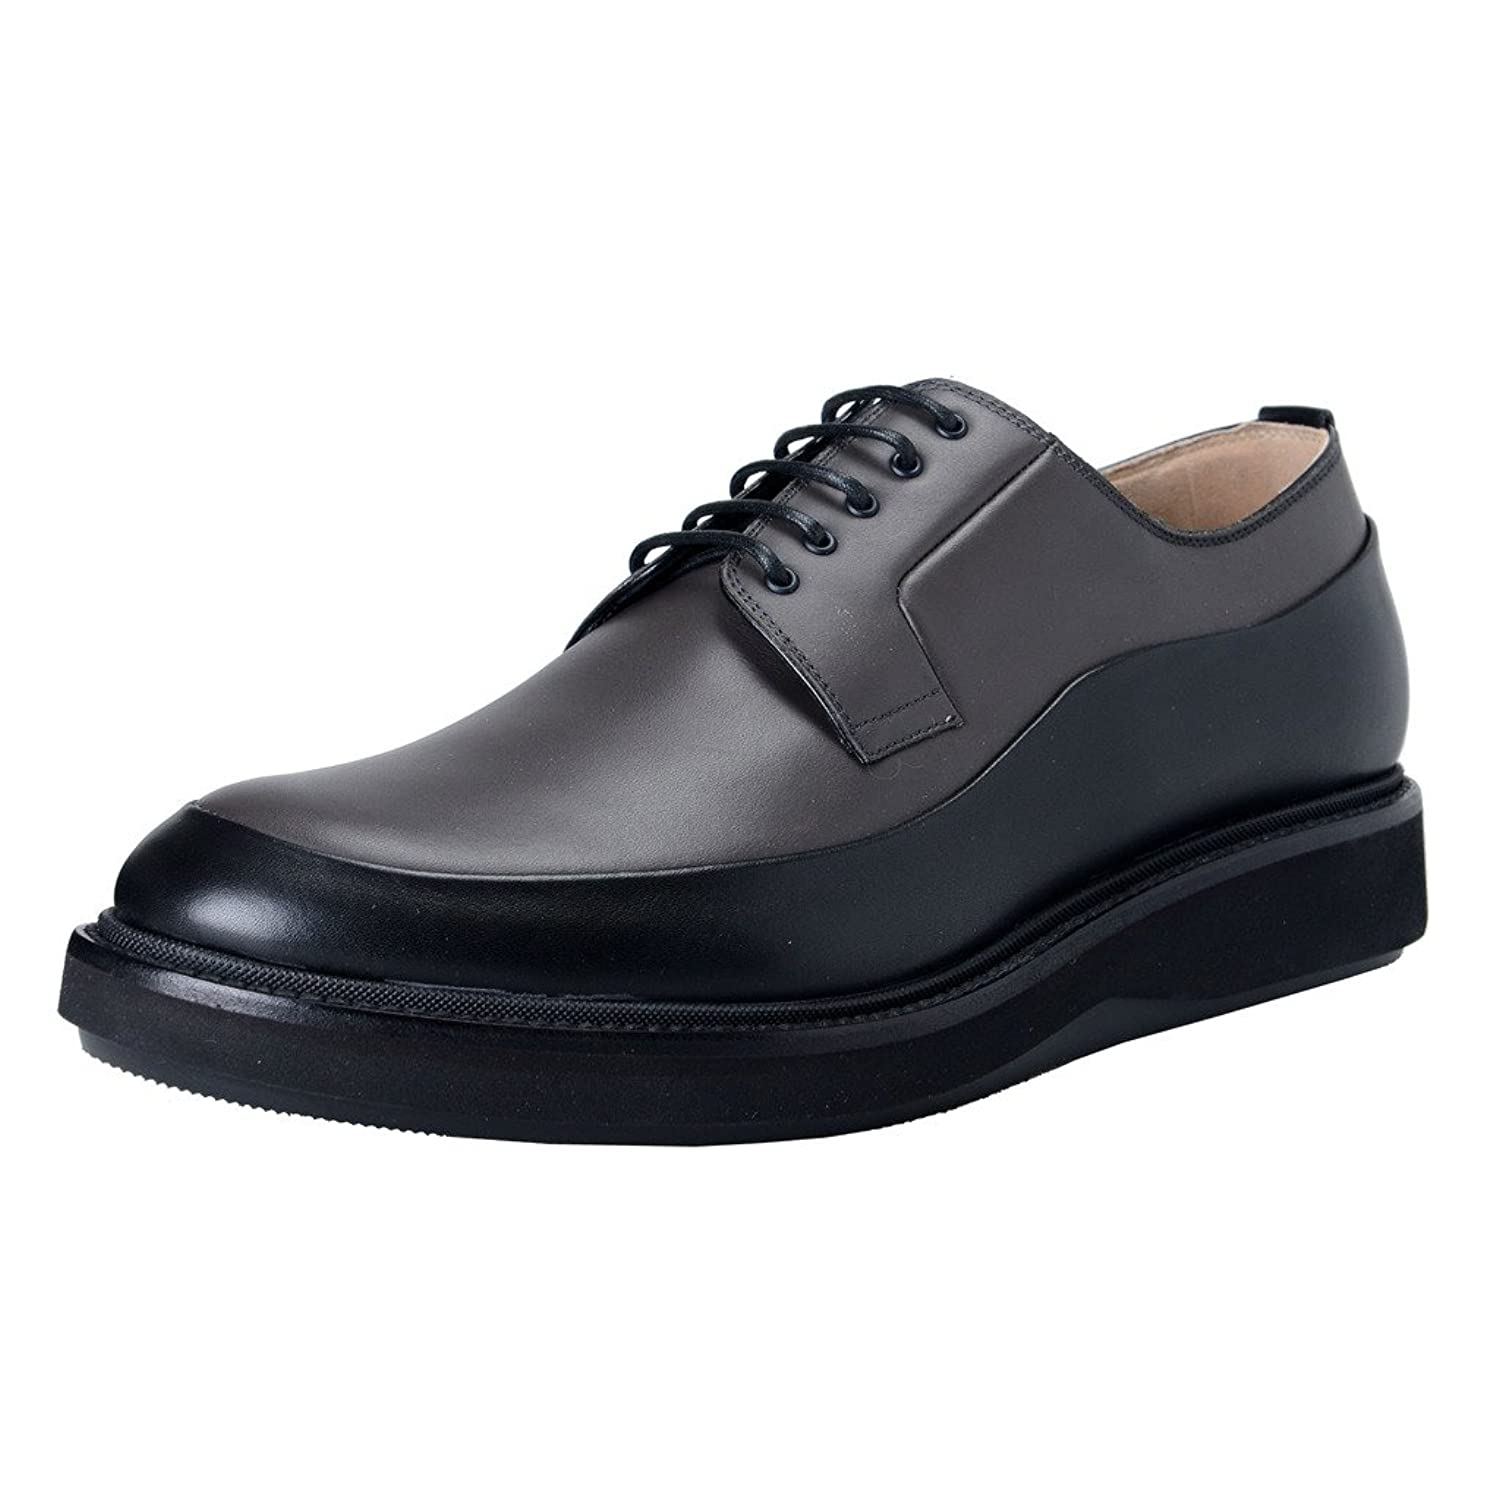 Dior Men's Gray Black Leather Derby Oxfords Shoes